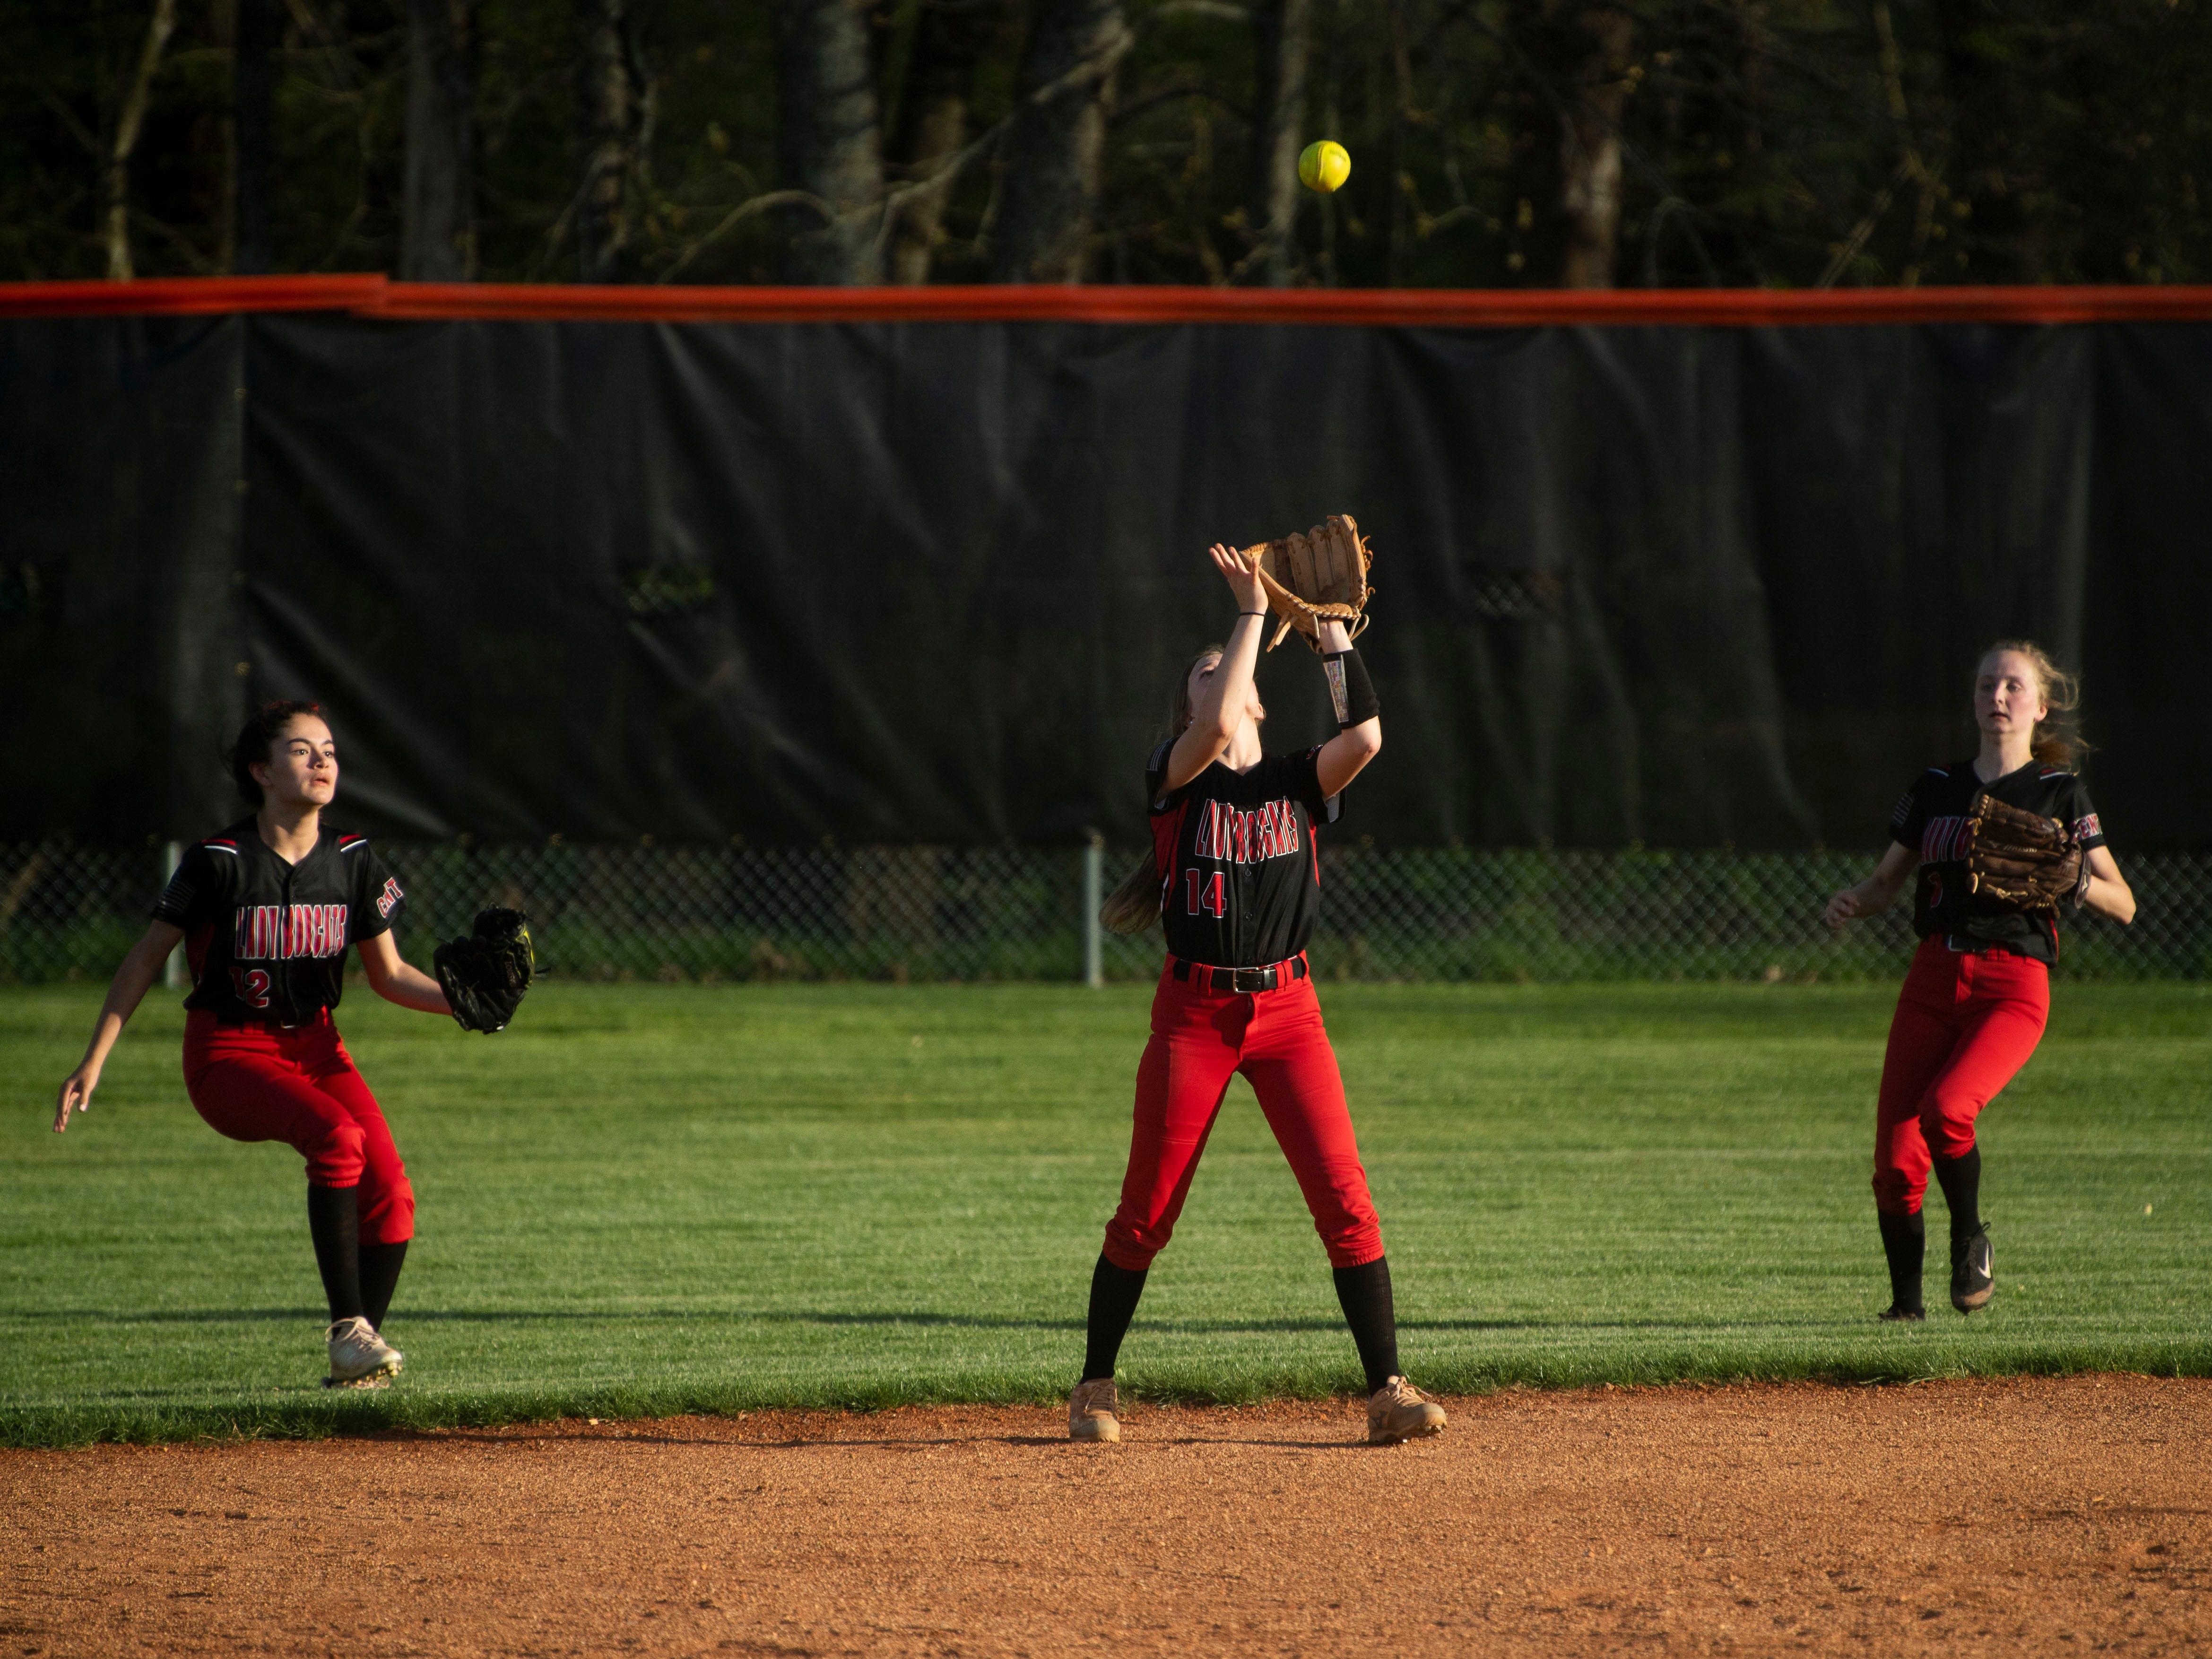 Central's Maycee Limbaugh (14) catches the fly ball in the game at Powell on Thursday, April 11, 2019.